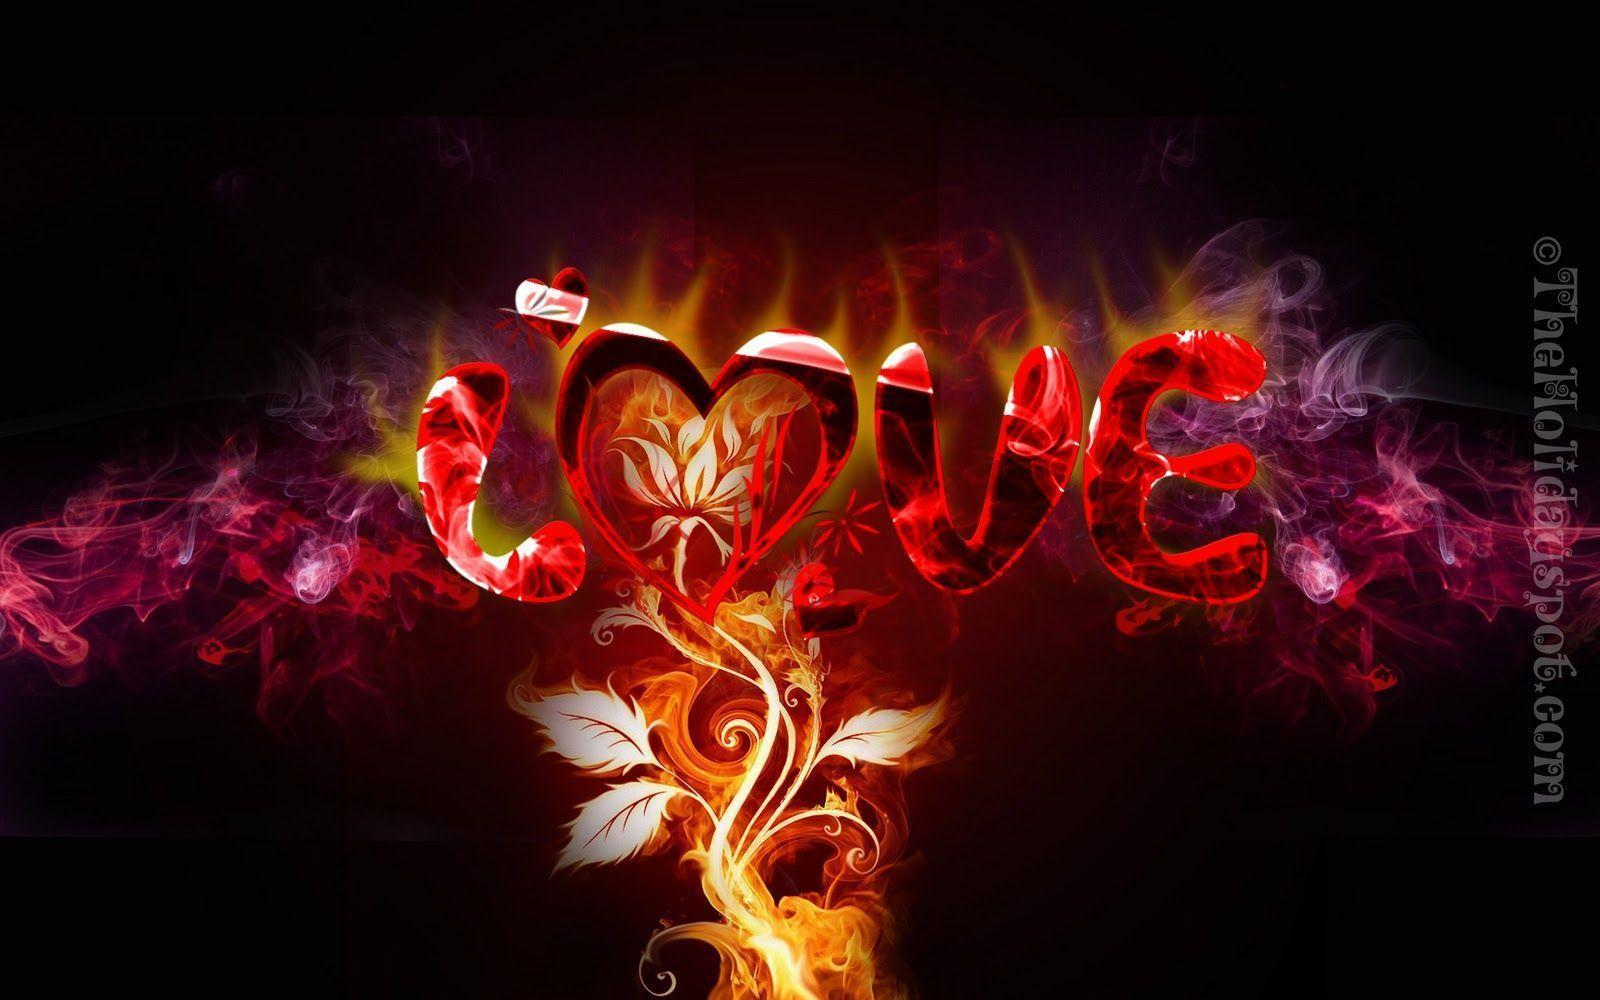 Love Wallpaper Wallpaper cave : Love Wallpapers 3D - Wallpaper cave